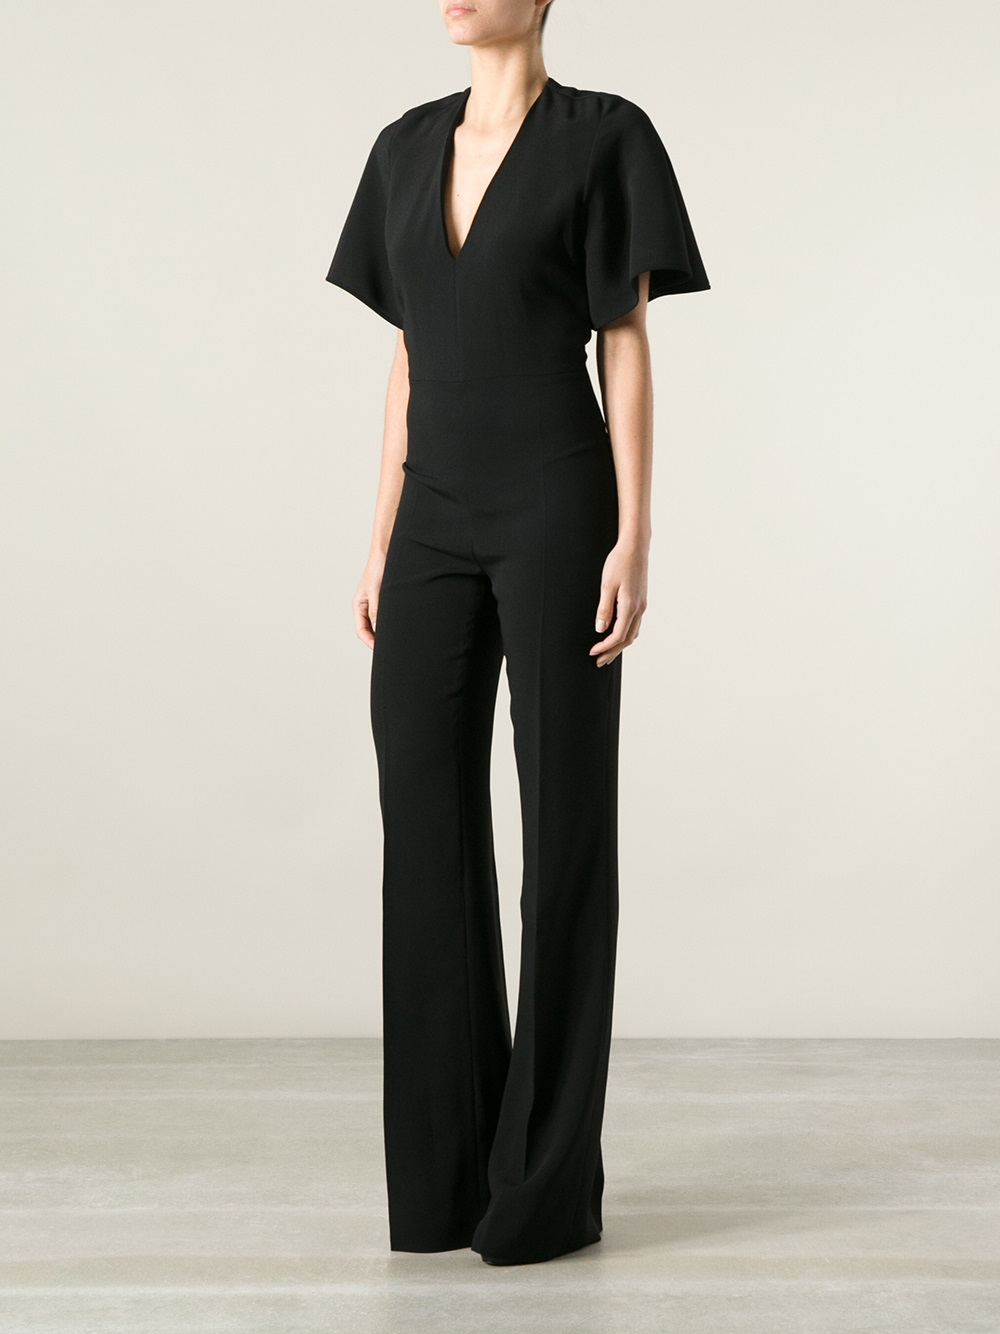 Stella Mccartney Flared Trouser Jumpsuit - Nida - Farfetch.com